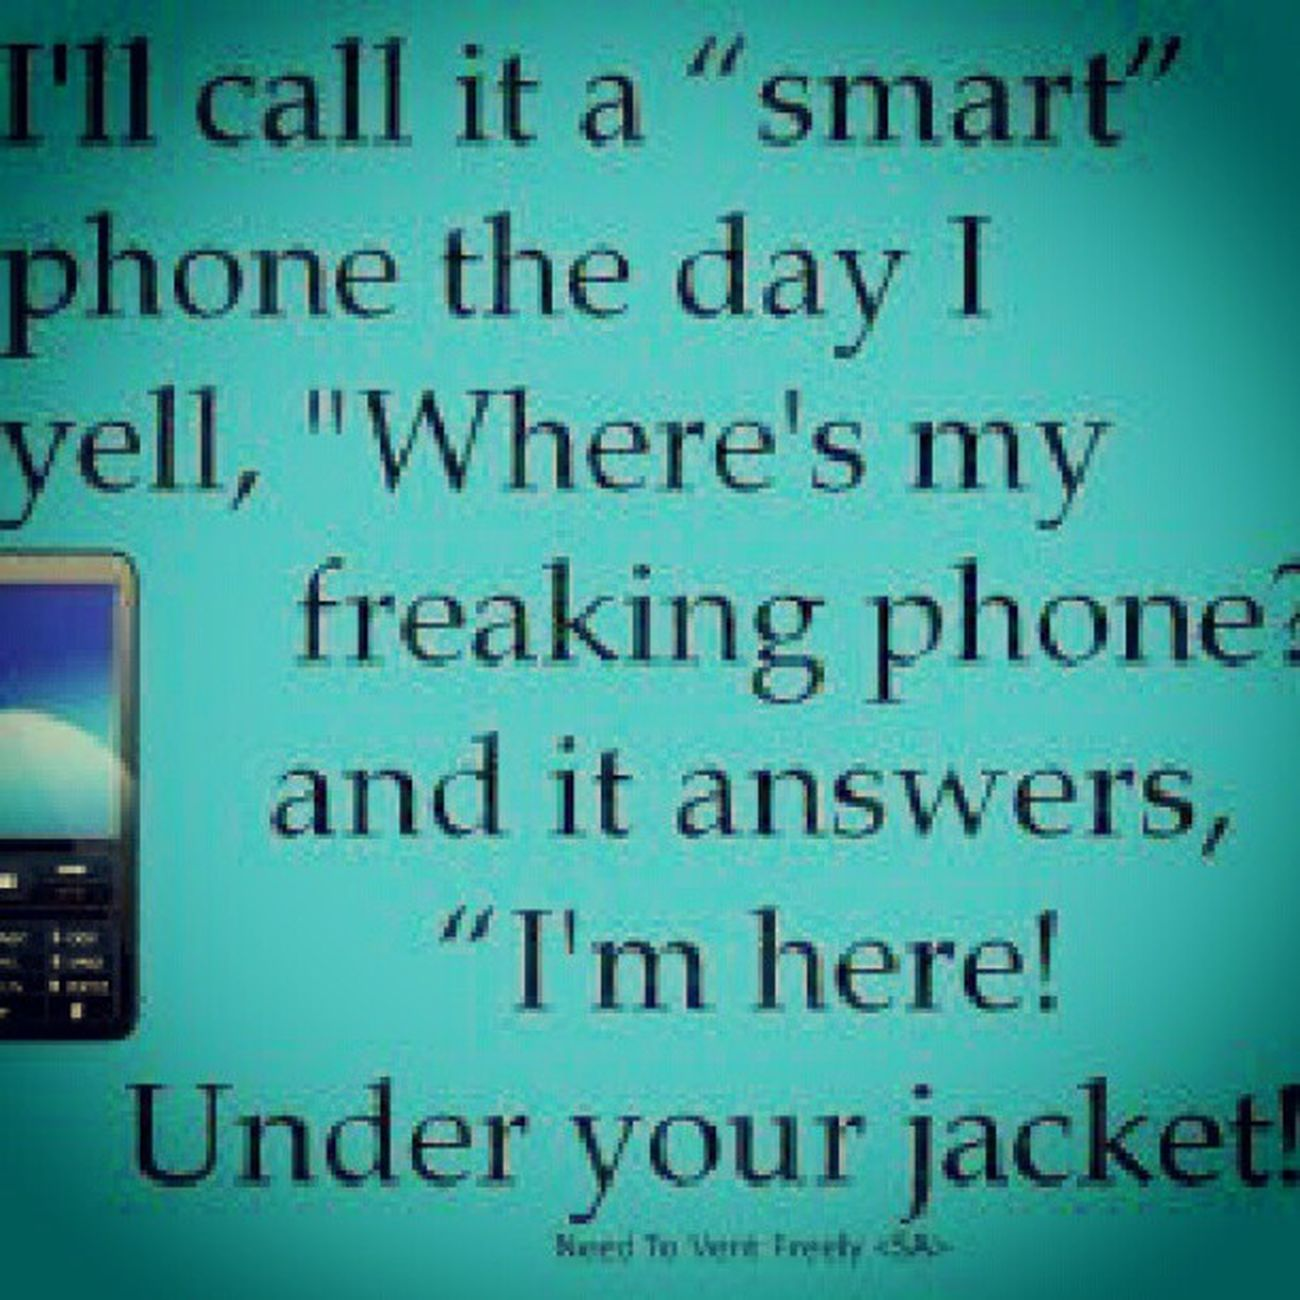 Yep, pretty much. SmartPhoneMyAss . Lol